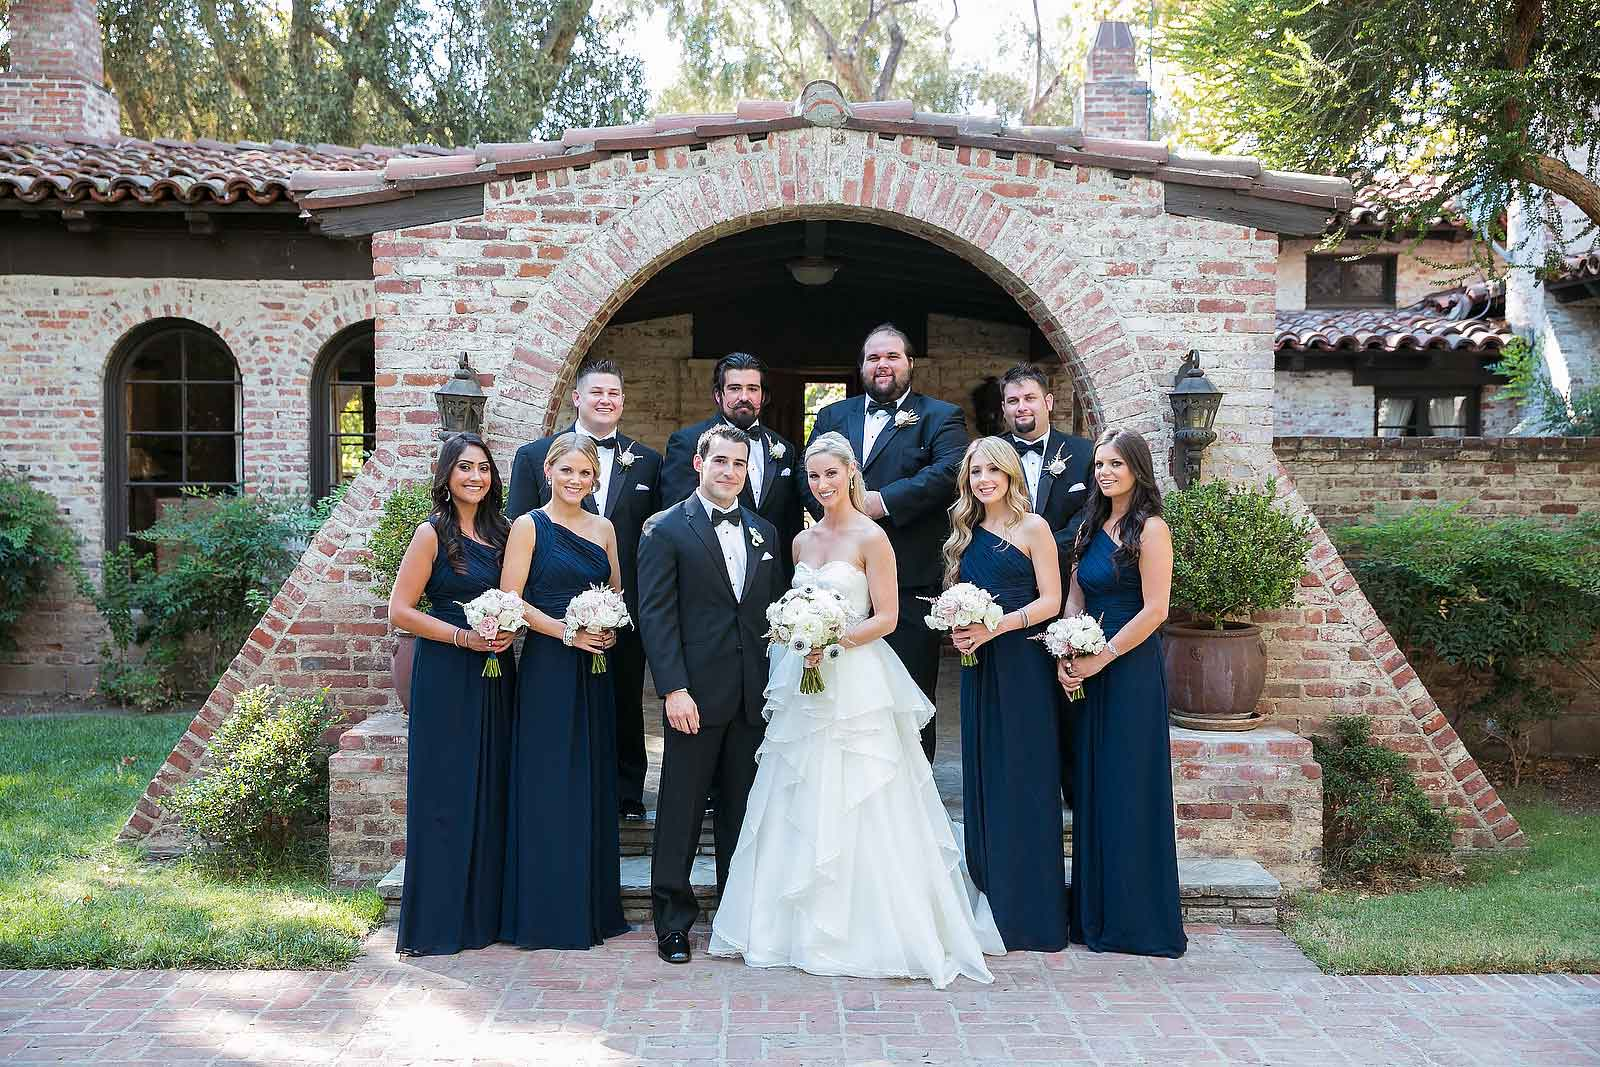 Blue Bridesmaid Dresses and Tuxedo Groomsmen